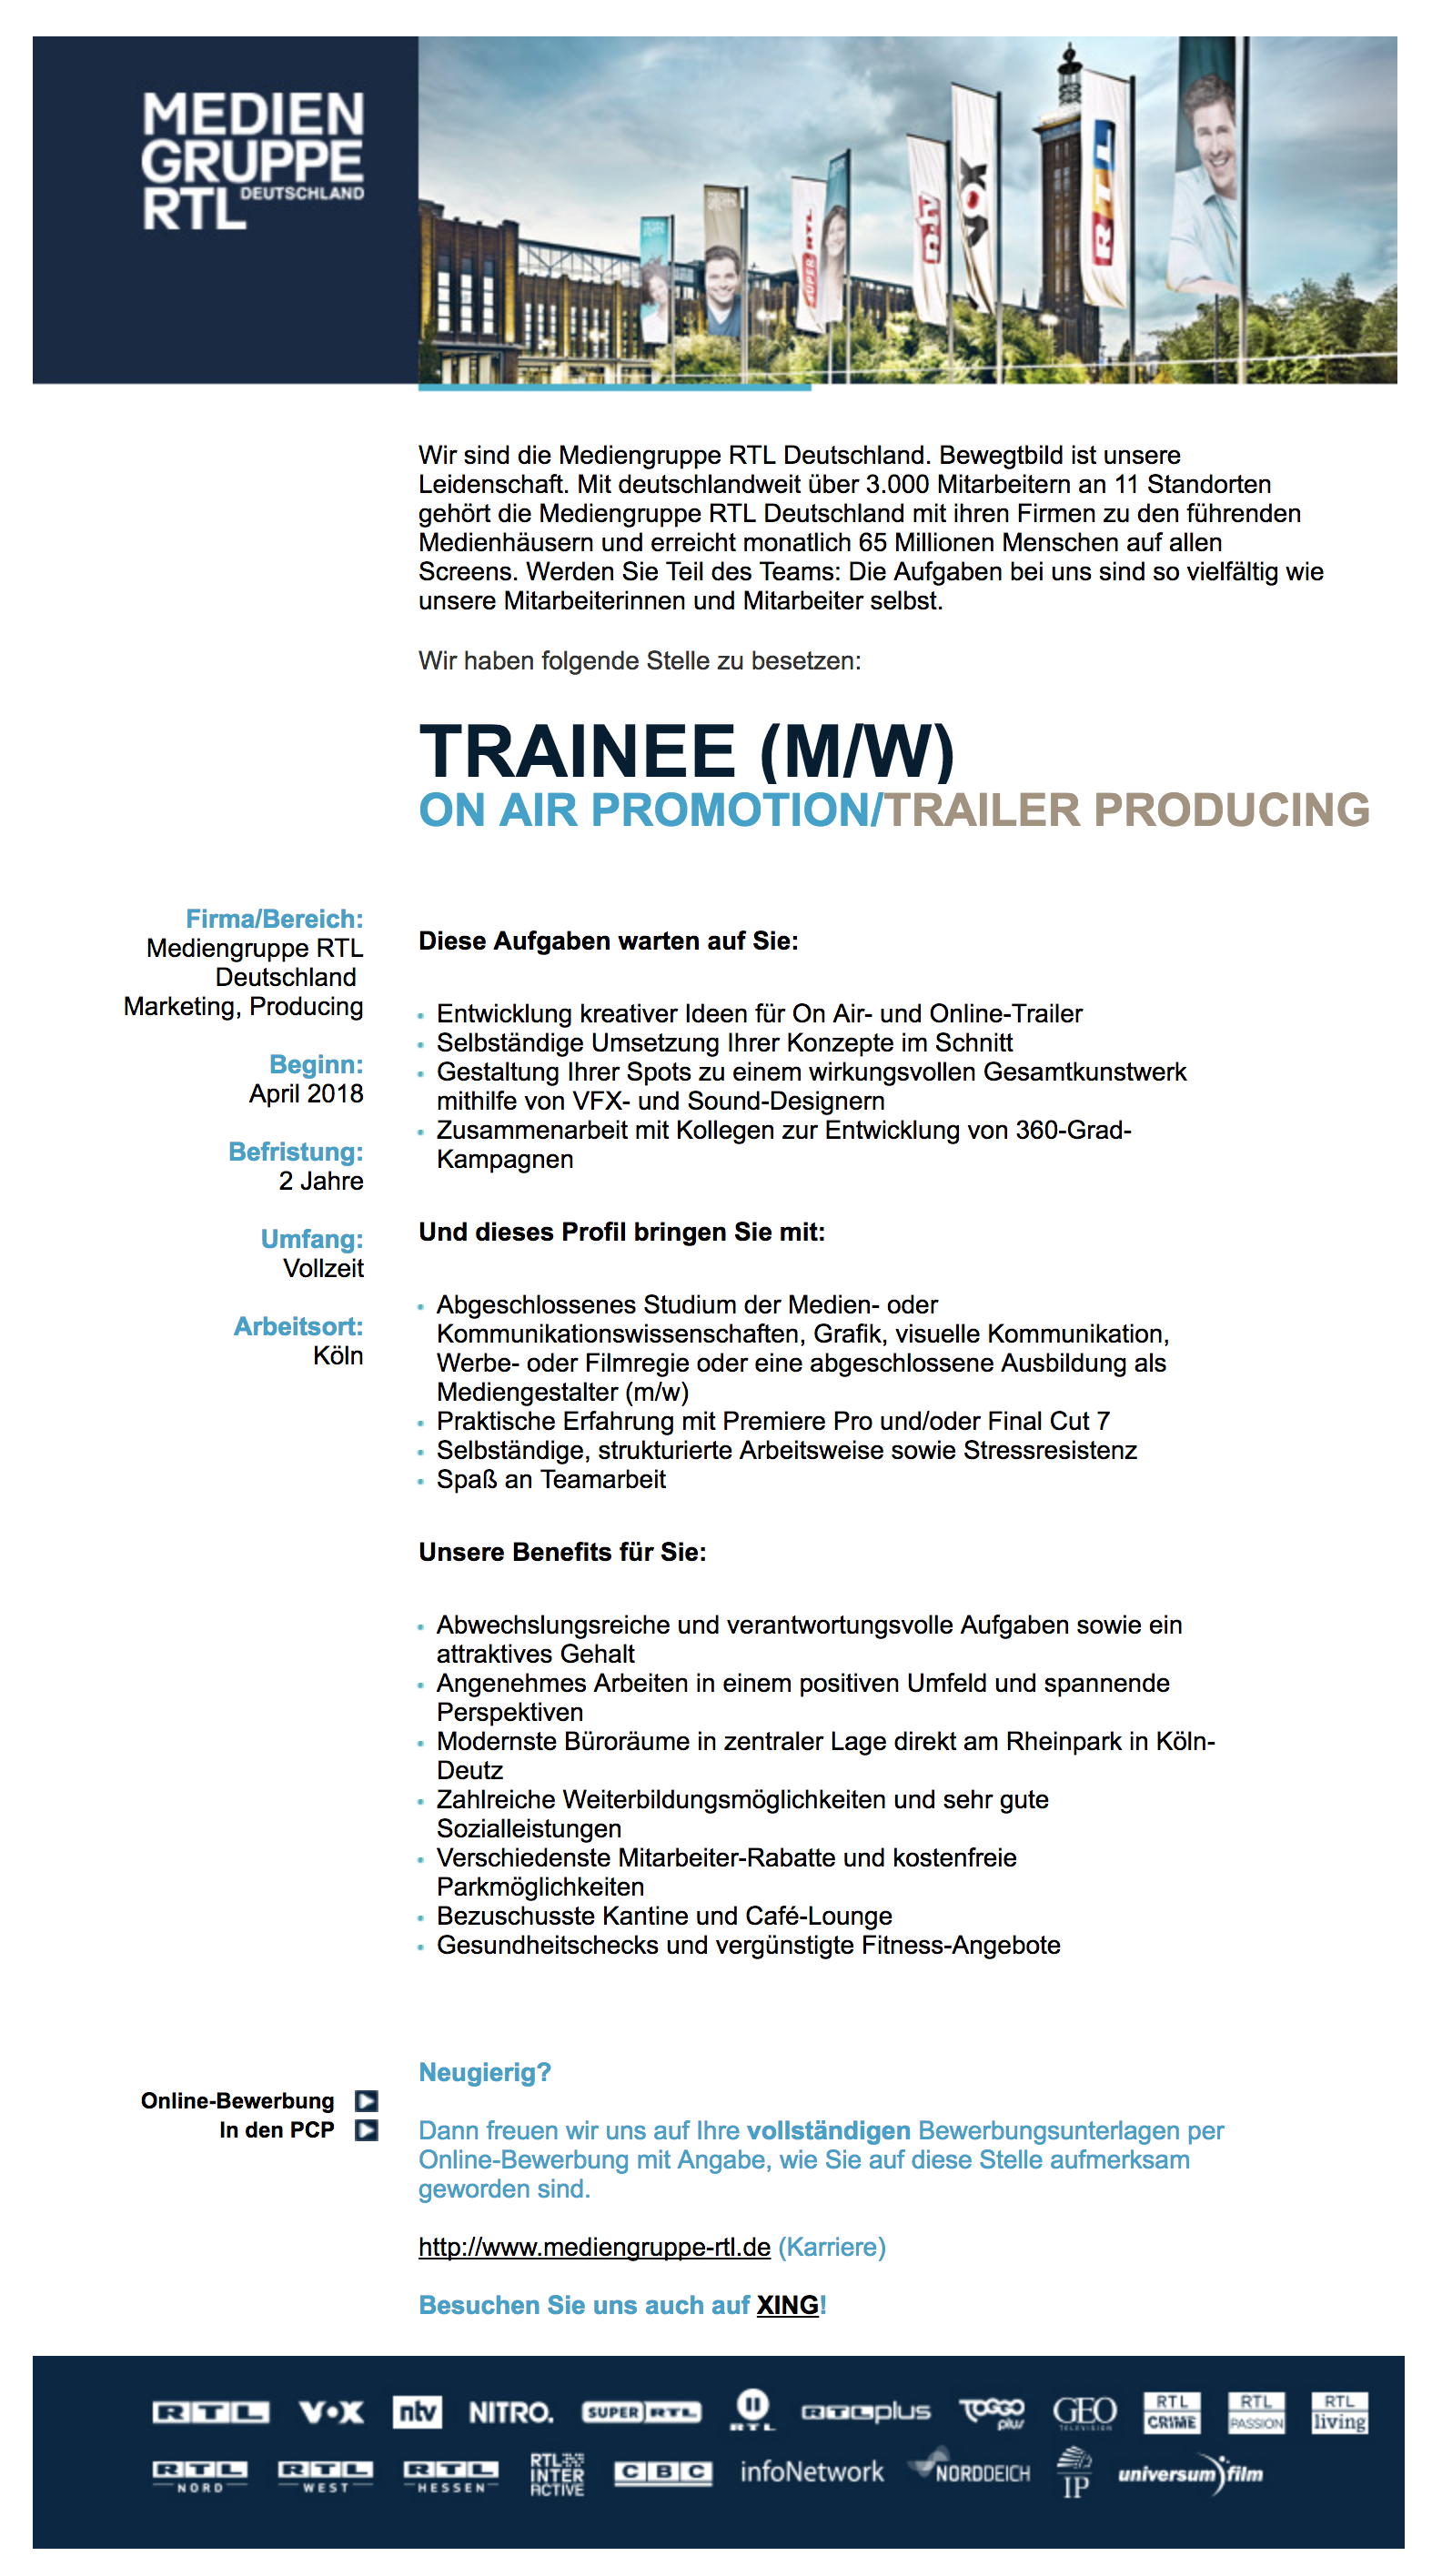 Trainee (m/w) On Air Promotion/Trailer Producing